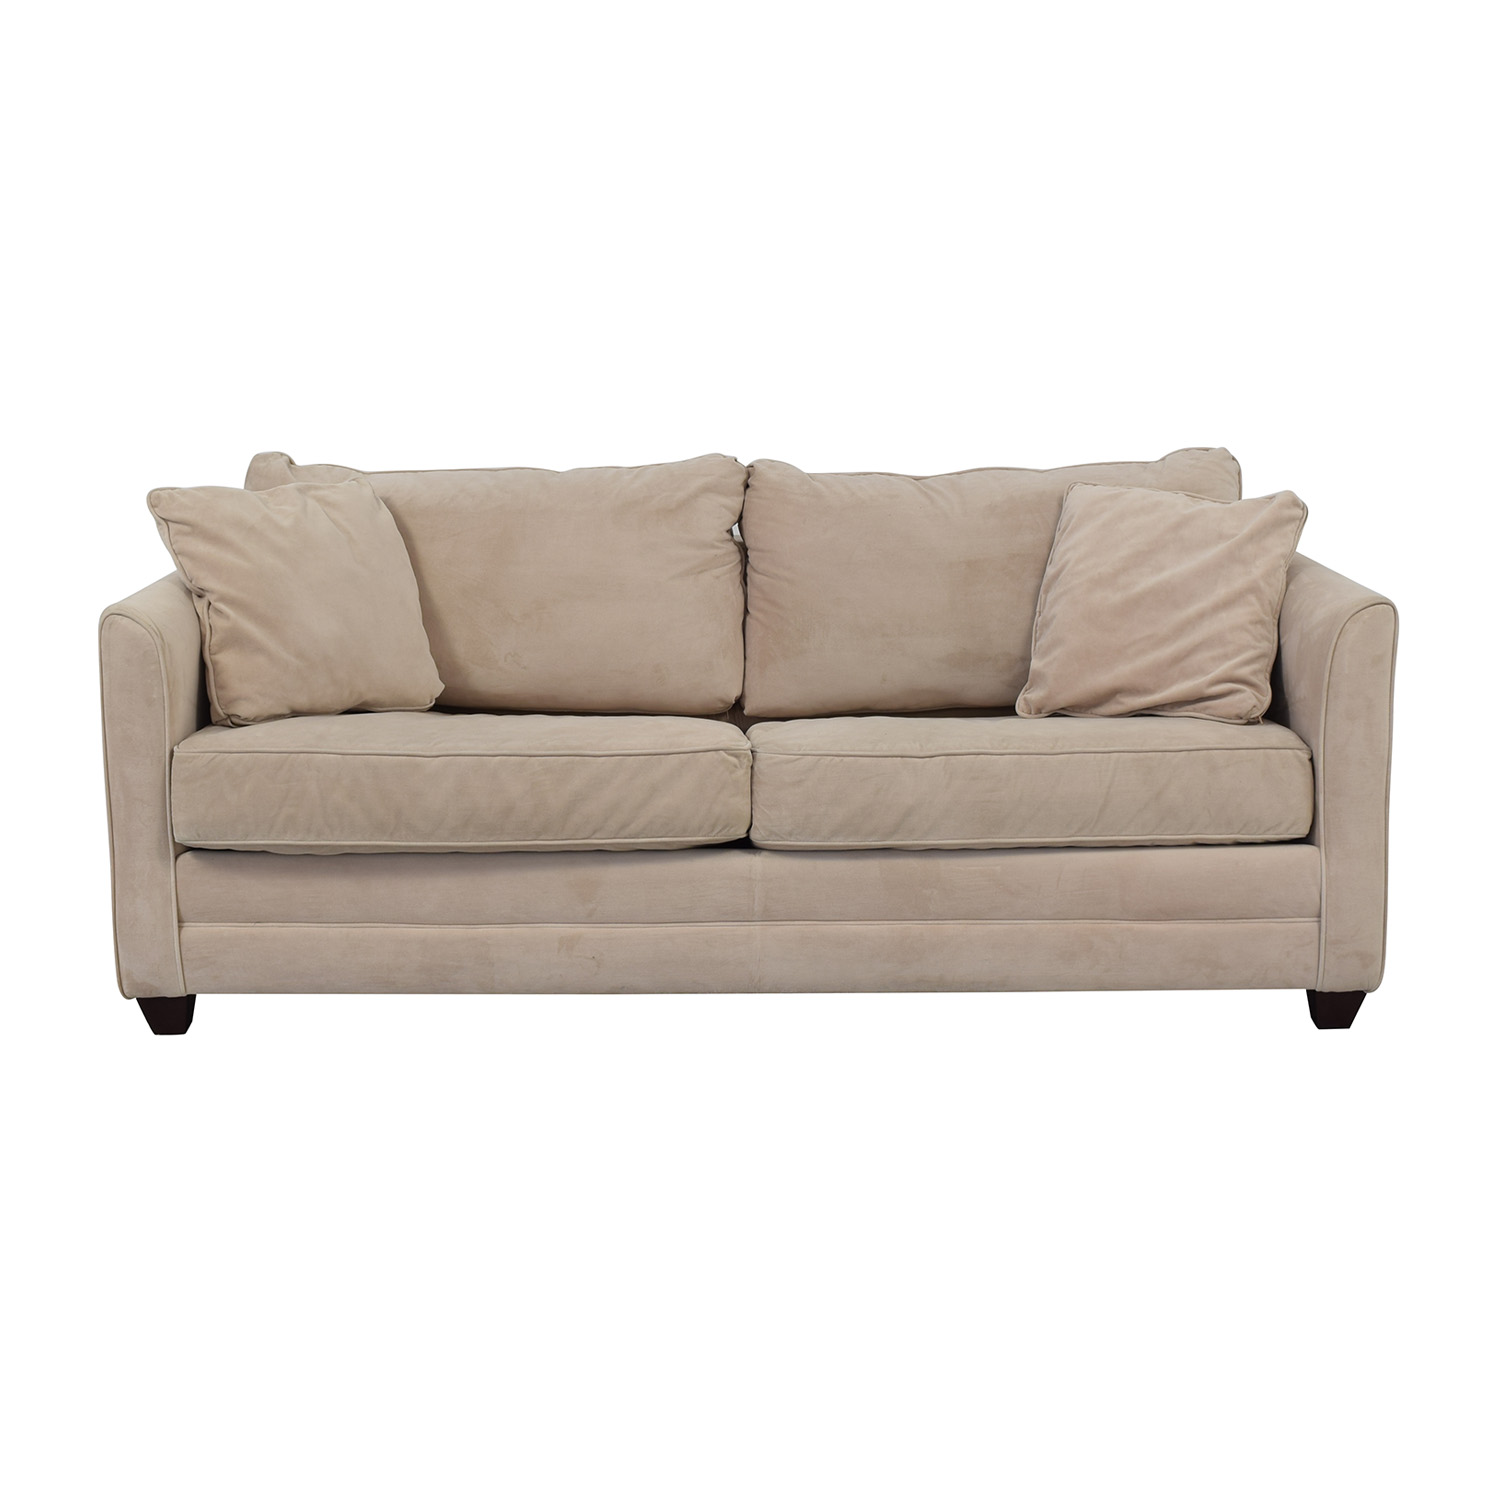 Tilly Fabric Sofa Queen Sleeper 50 Off Jennifer Furniture Jennifer Furniture Tilly Queen Sleeper Sofa Sofas